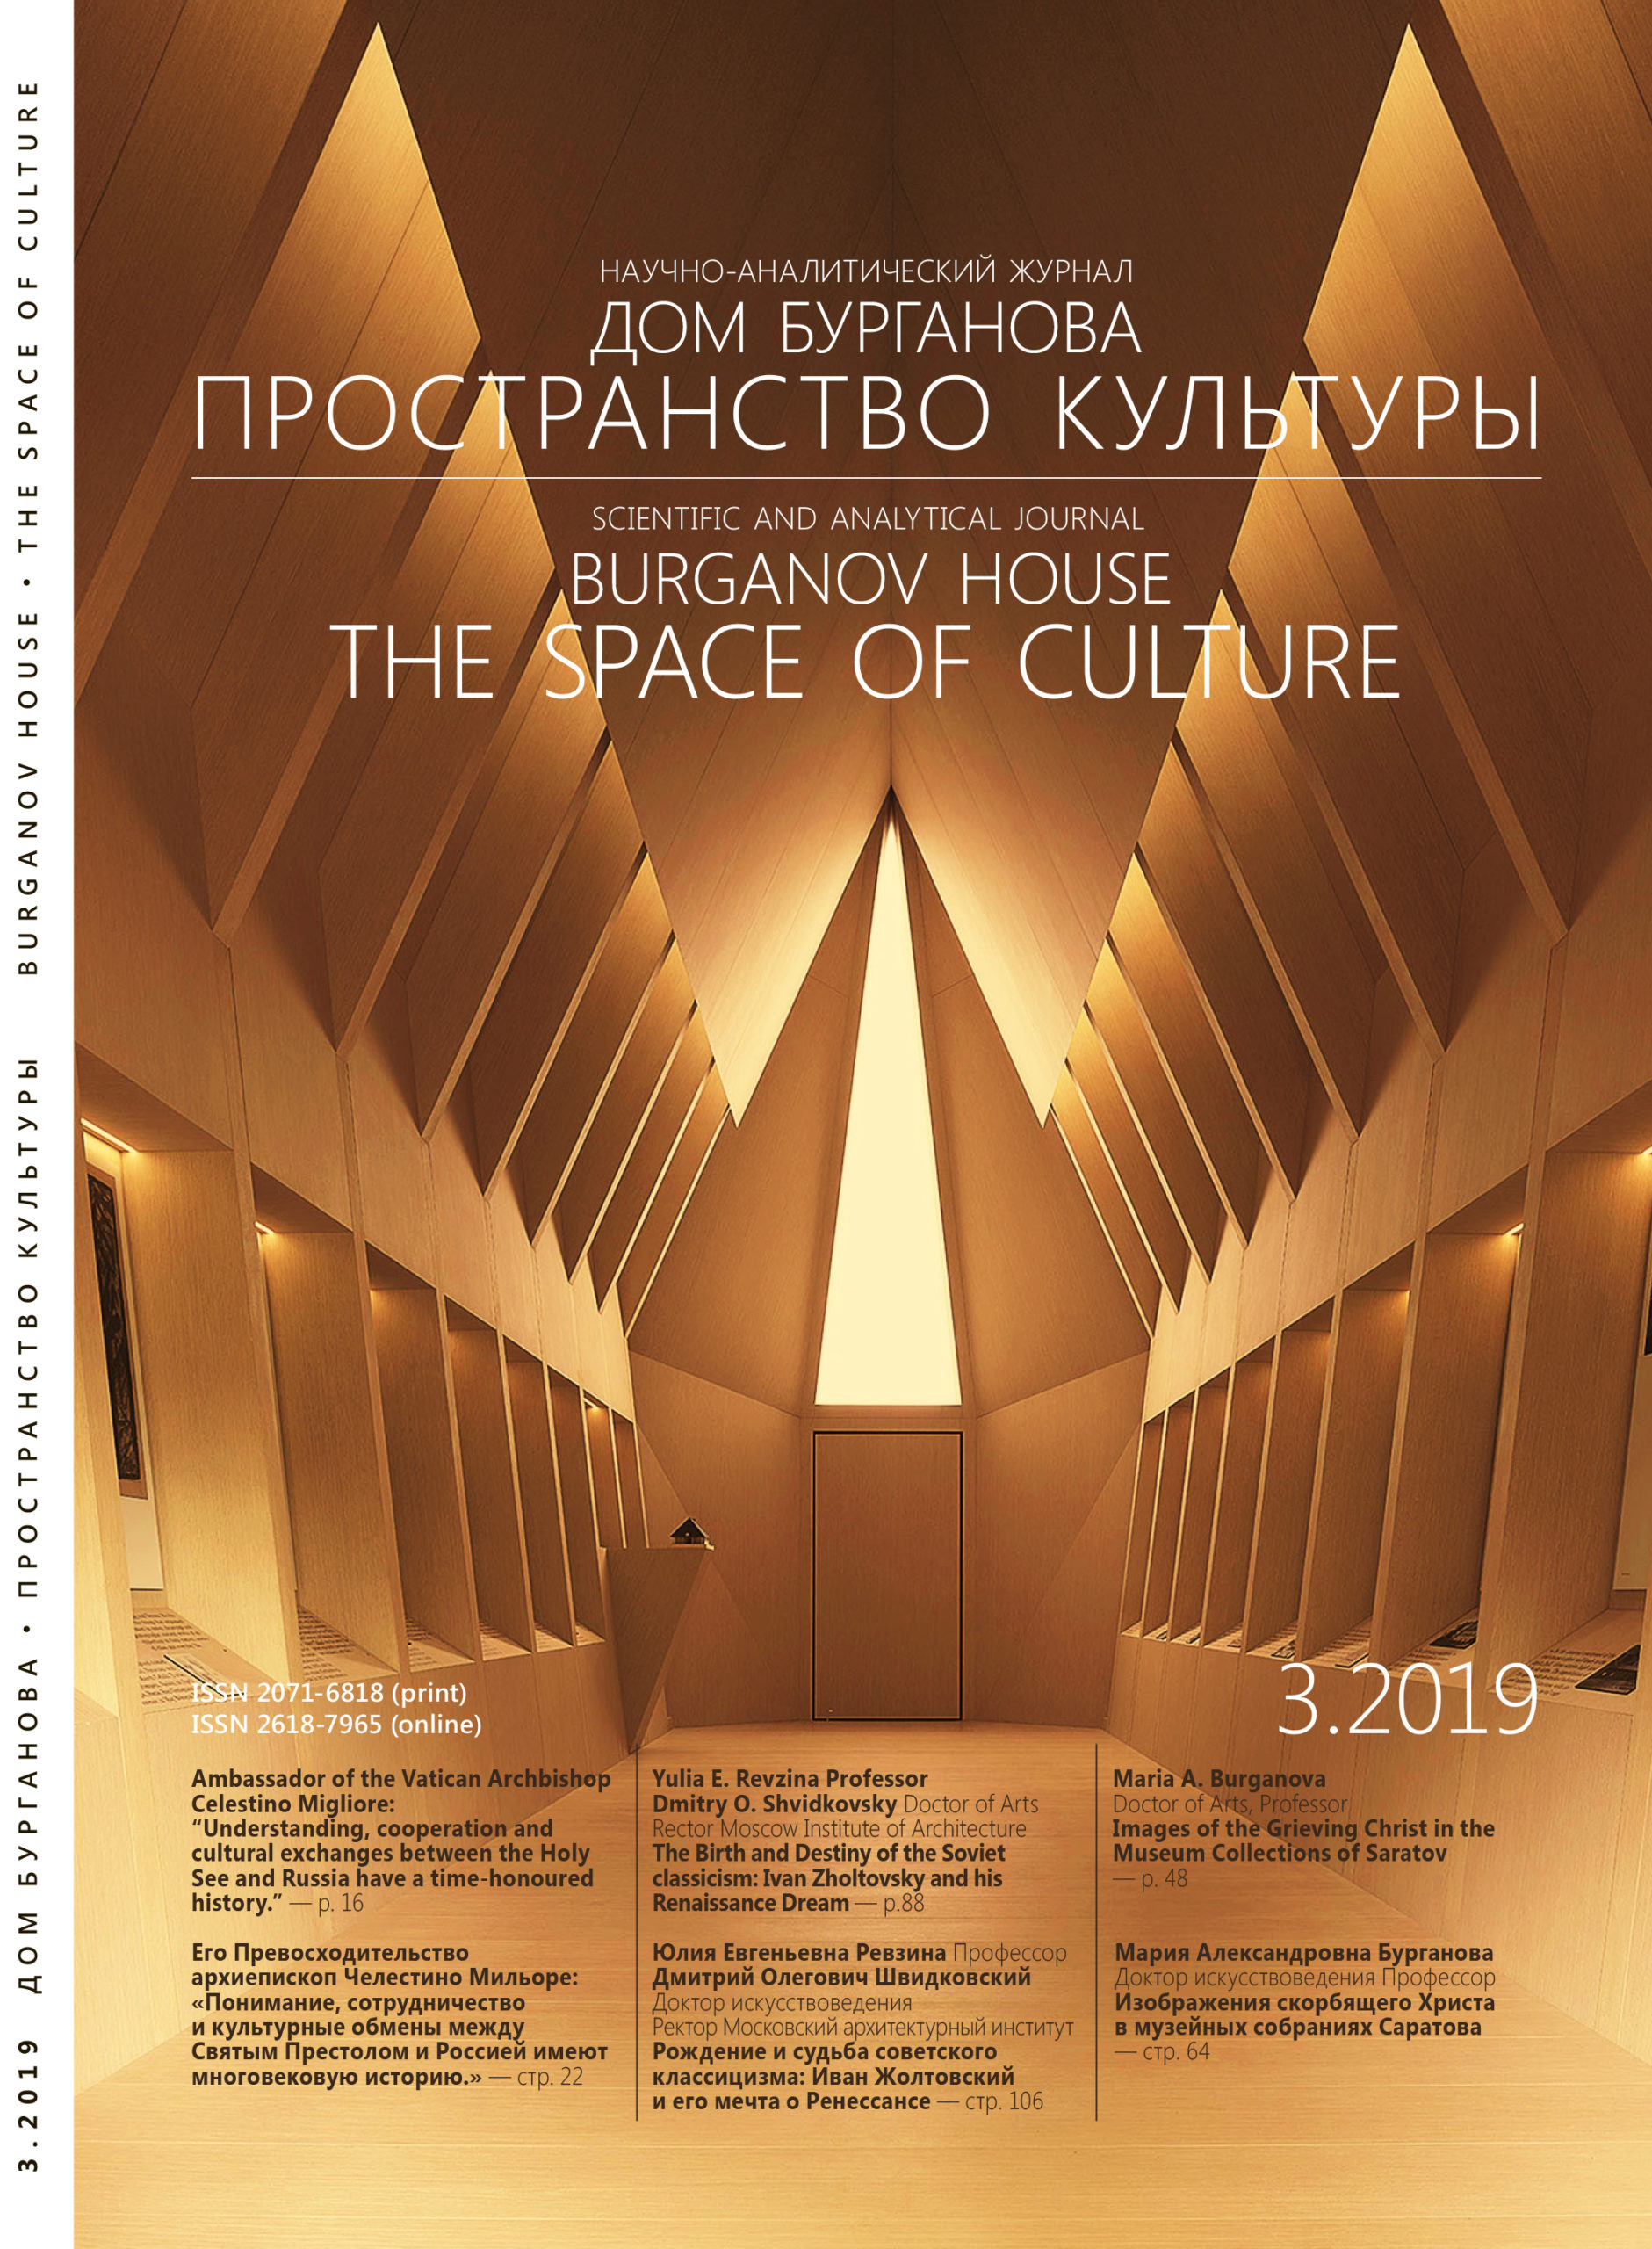 Journal Burganov House. The Space of Culture. 3.2019